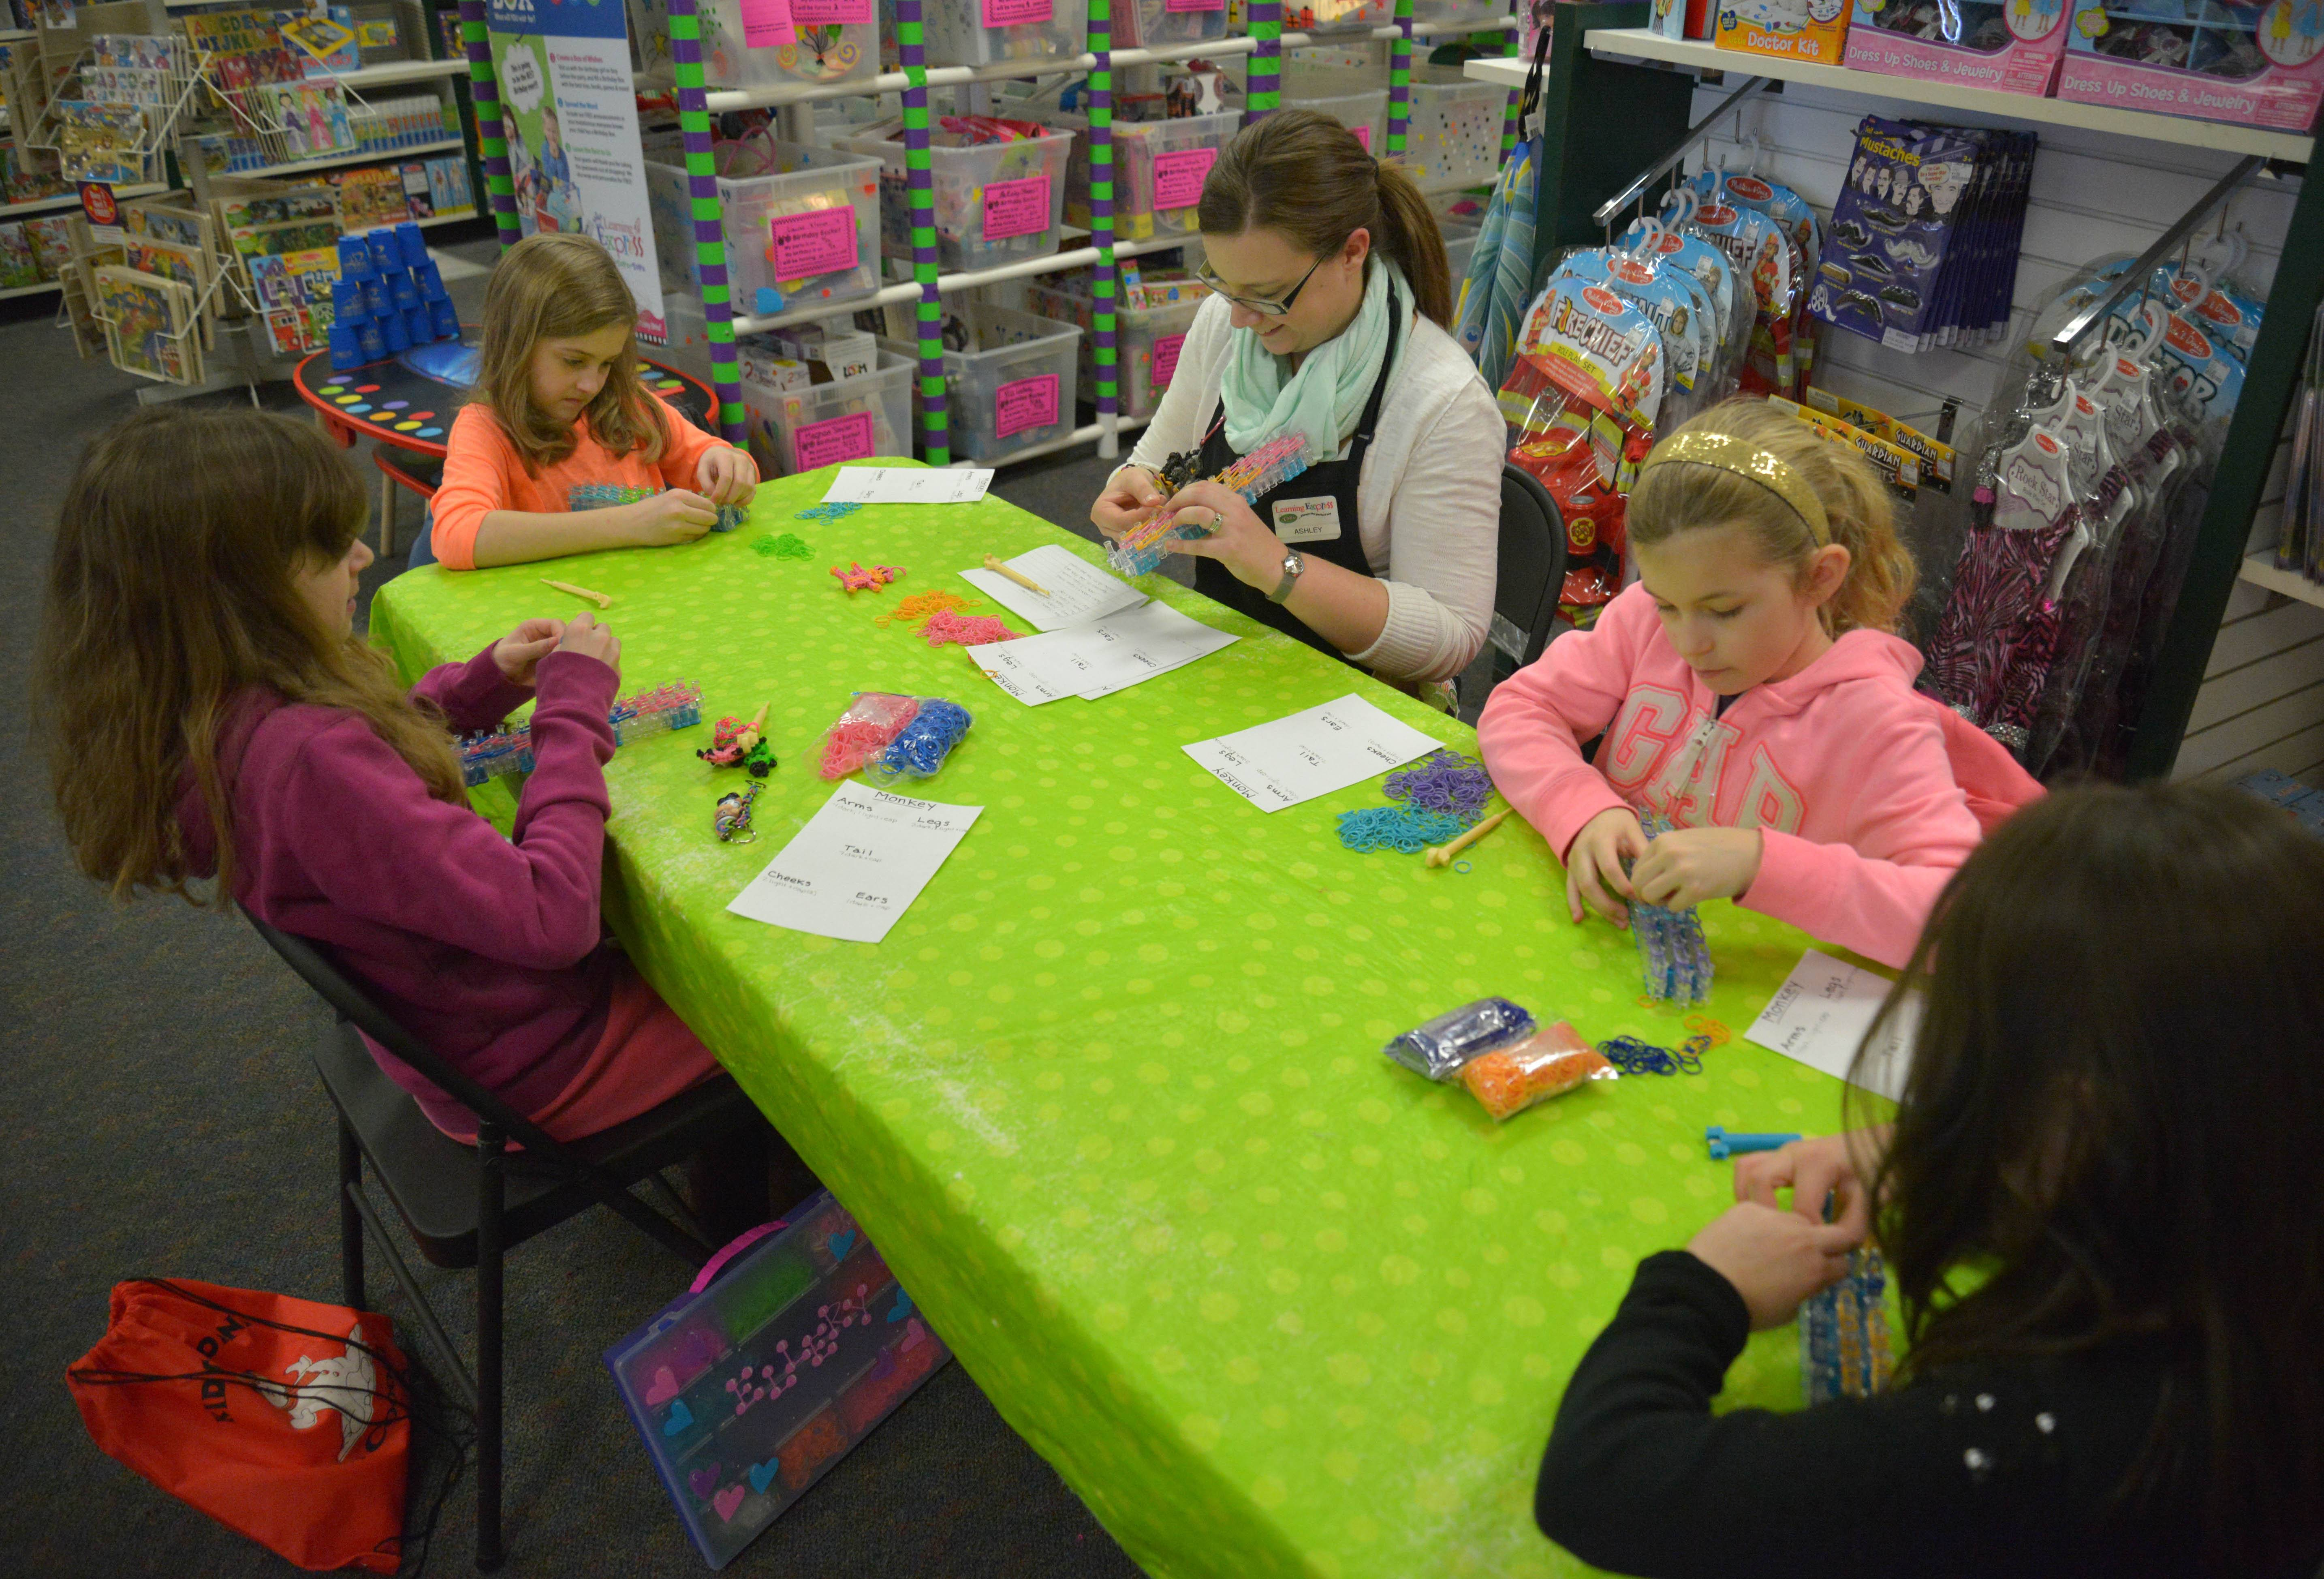 The Learning Express toy store bustles with shoppers, but Ellery Patterson, 11, of Aurora, Kaeli Wloch, 10, of Romeoville, instructor Ashley Humberstone, of Lombard, Hailey Mitchell, 8, of Aurora, and Eleanor Cuasay, 8, of Naperville, focus on turning rubber bands into a colorful Rainbow Loom monkeys.